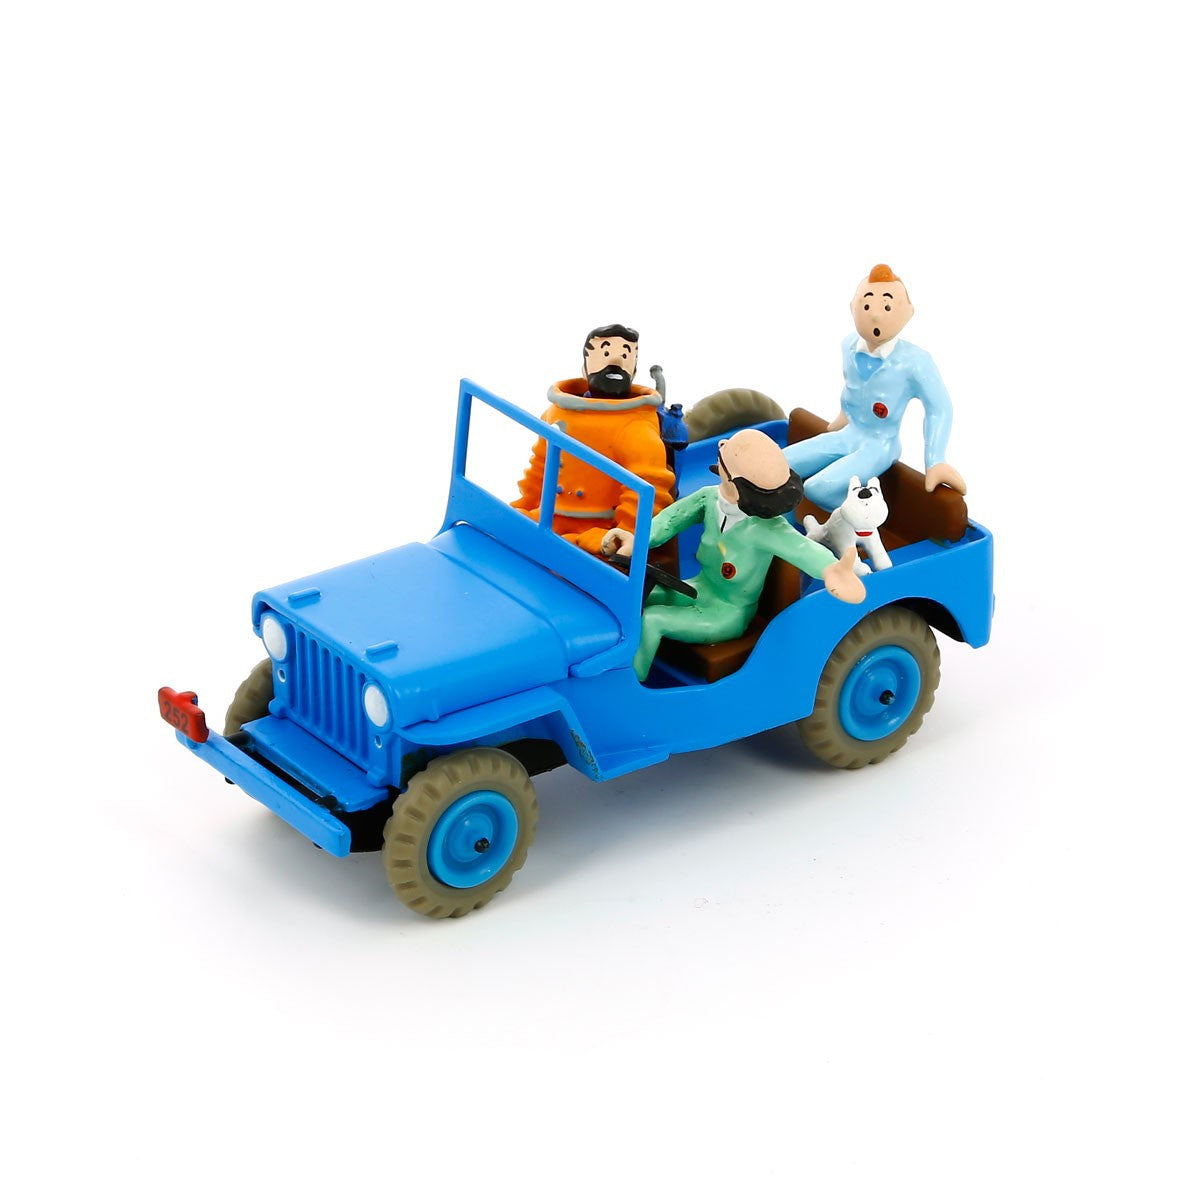 TINTIN CARS 2: Blue Jeep